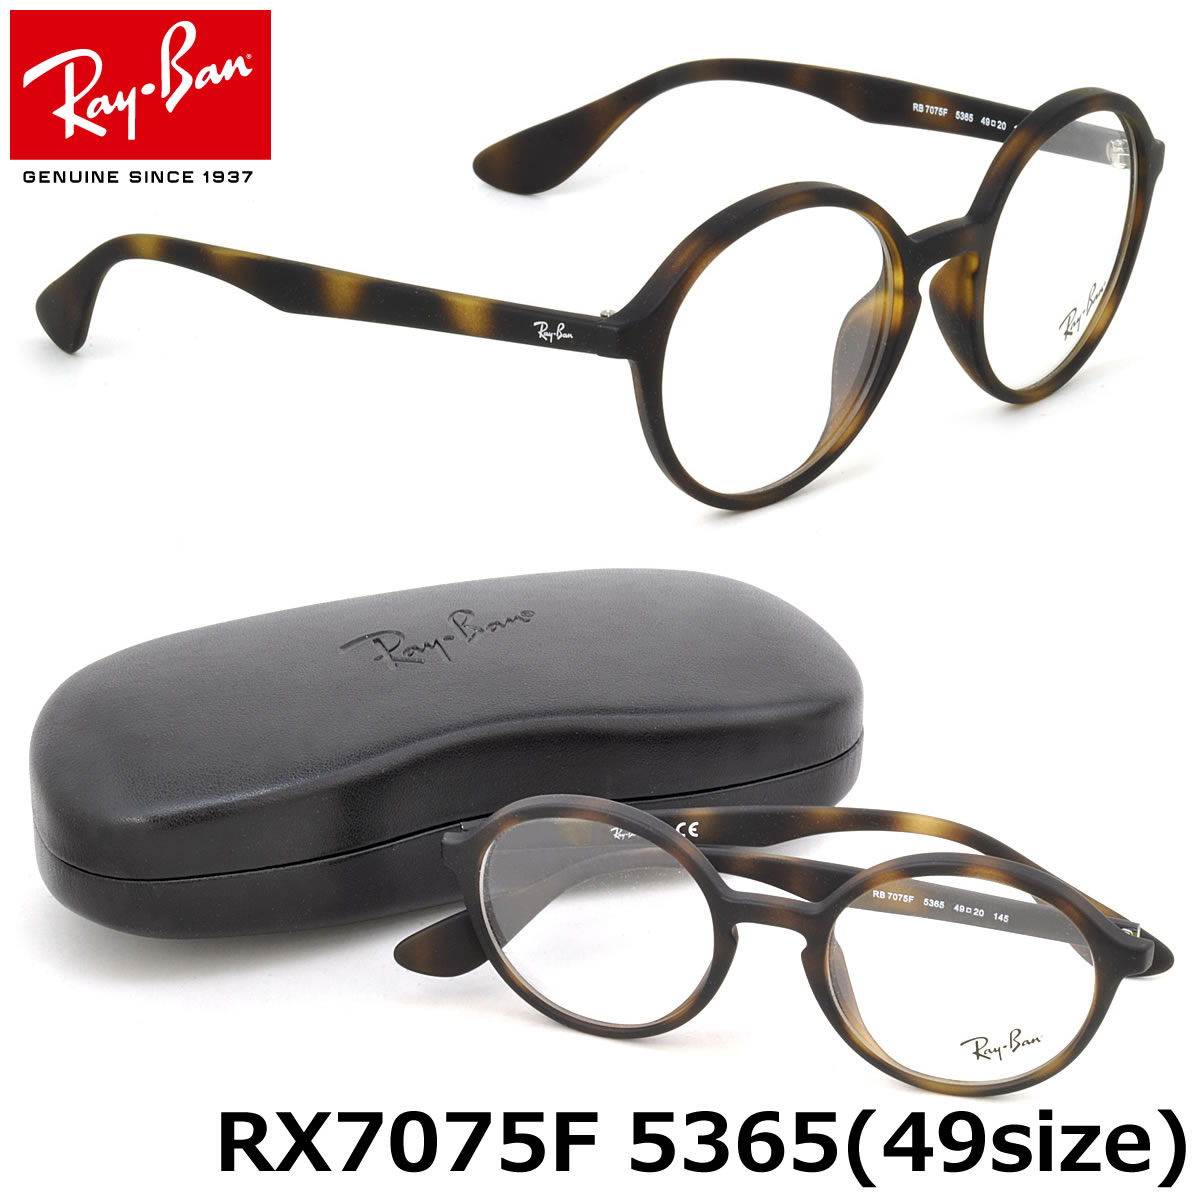 b967e12d1d Up to 10 6 (Thursday) 1 59 (Ray-Ban) glasses frames RX7075F5365 49 size  round round glasses ROUND full fit Ray Ban RayBan Ray-Ban men women